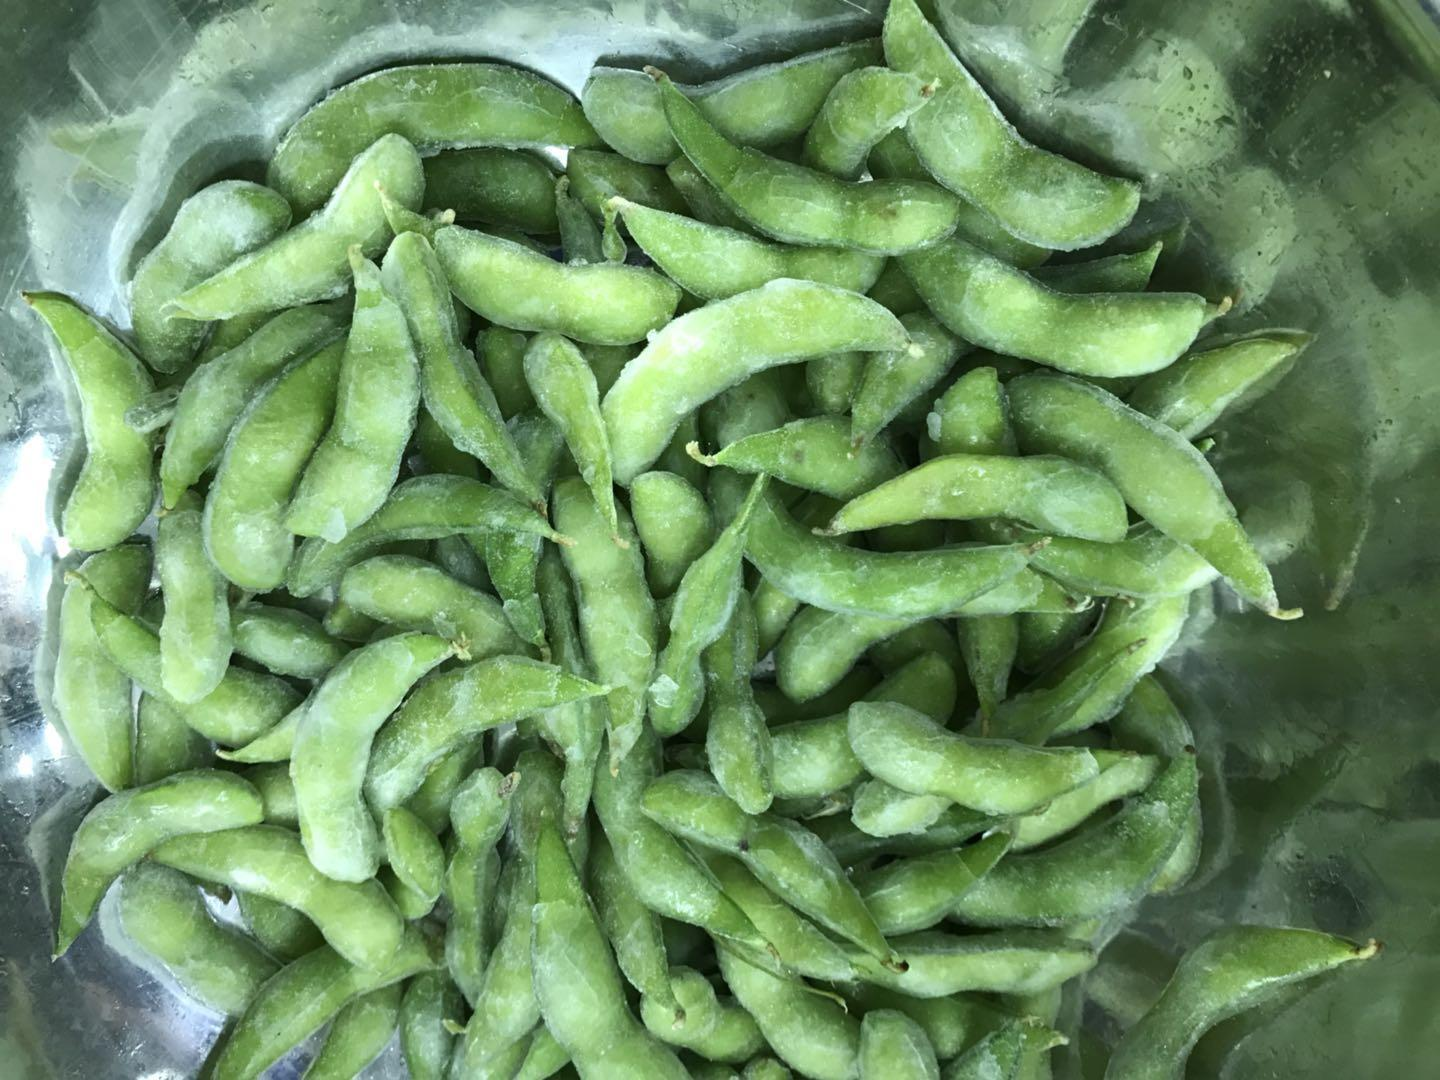 IQF Edamame,Frozen Edamame,IQF Green Soy Beans,Frozen Green Soy Beans 14